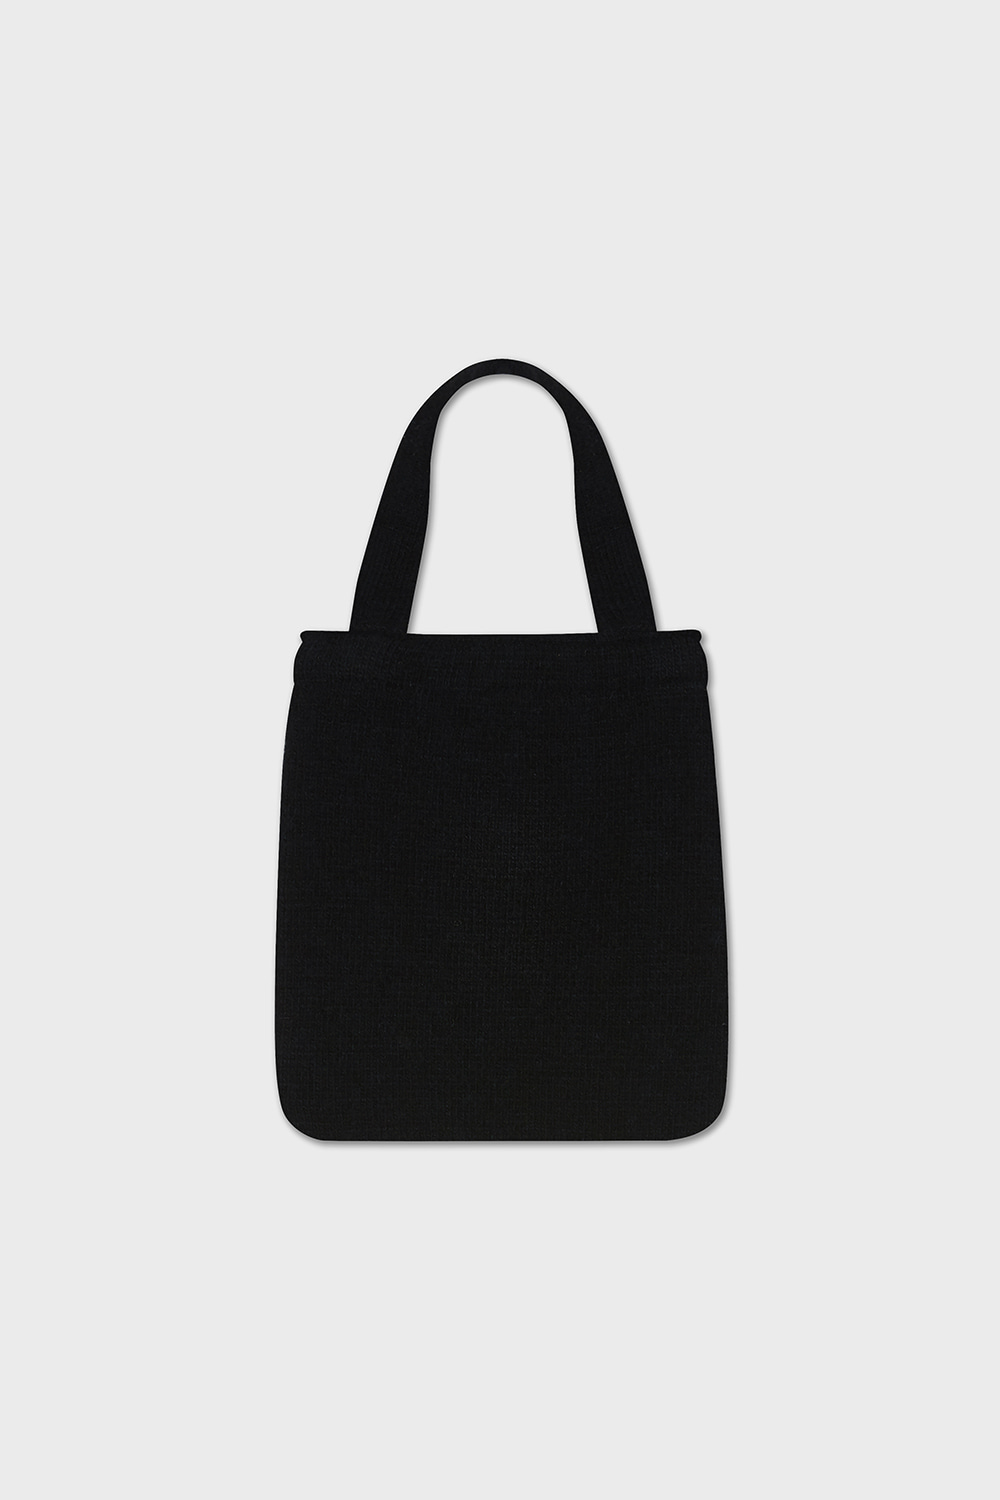 FISH KNIT BAG (BLACK)